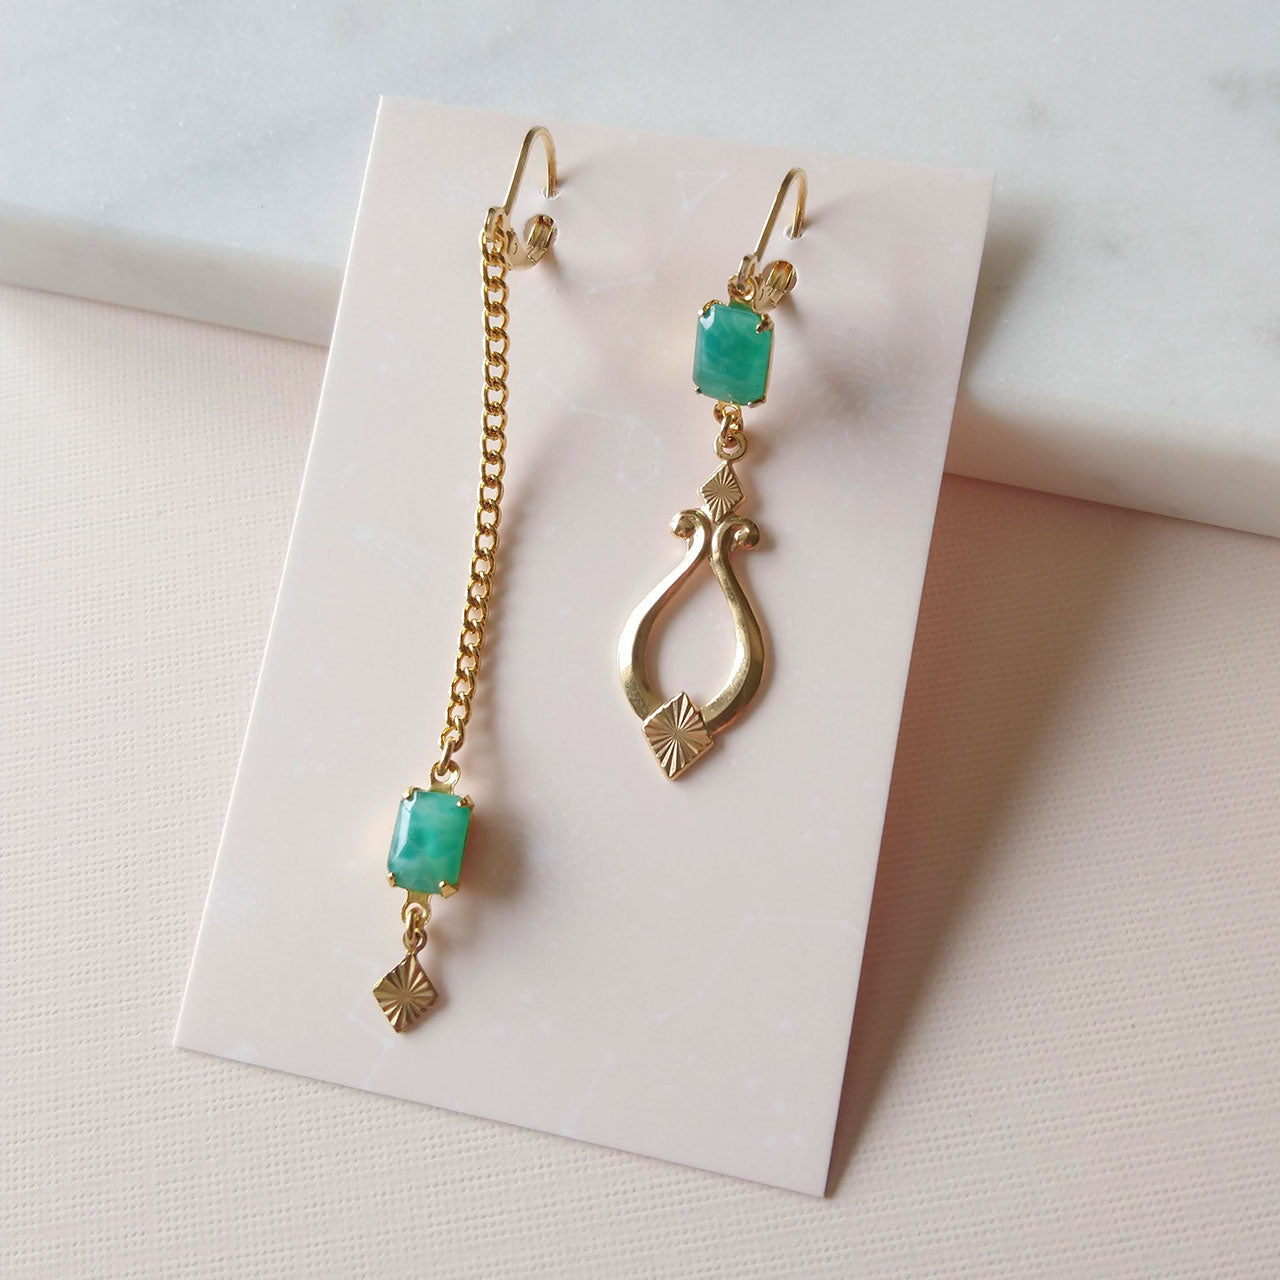 Asymmetrical earrings jade green